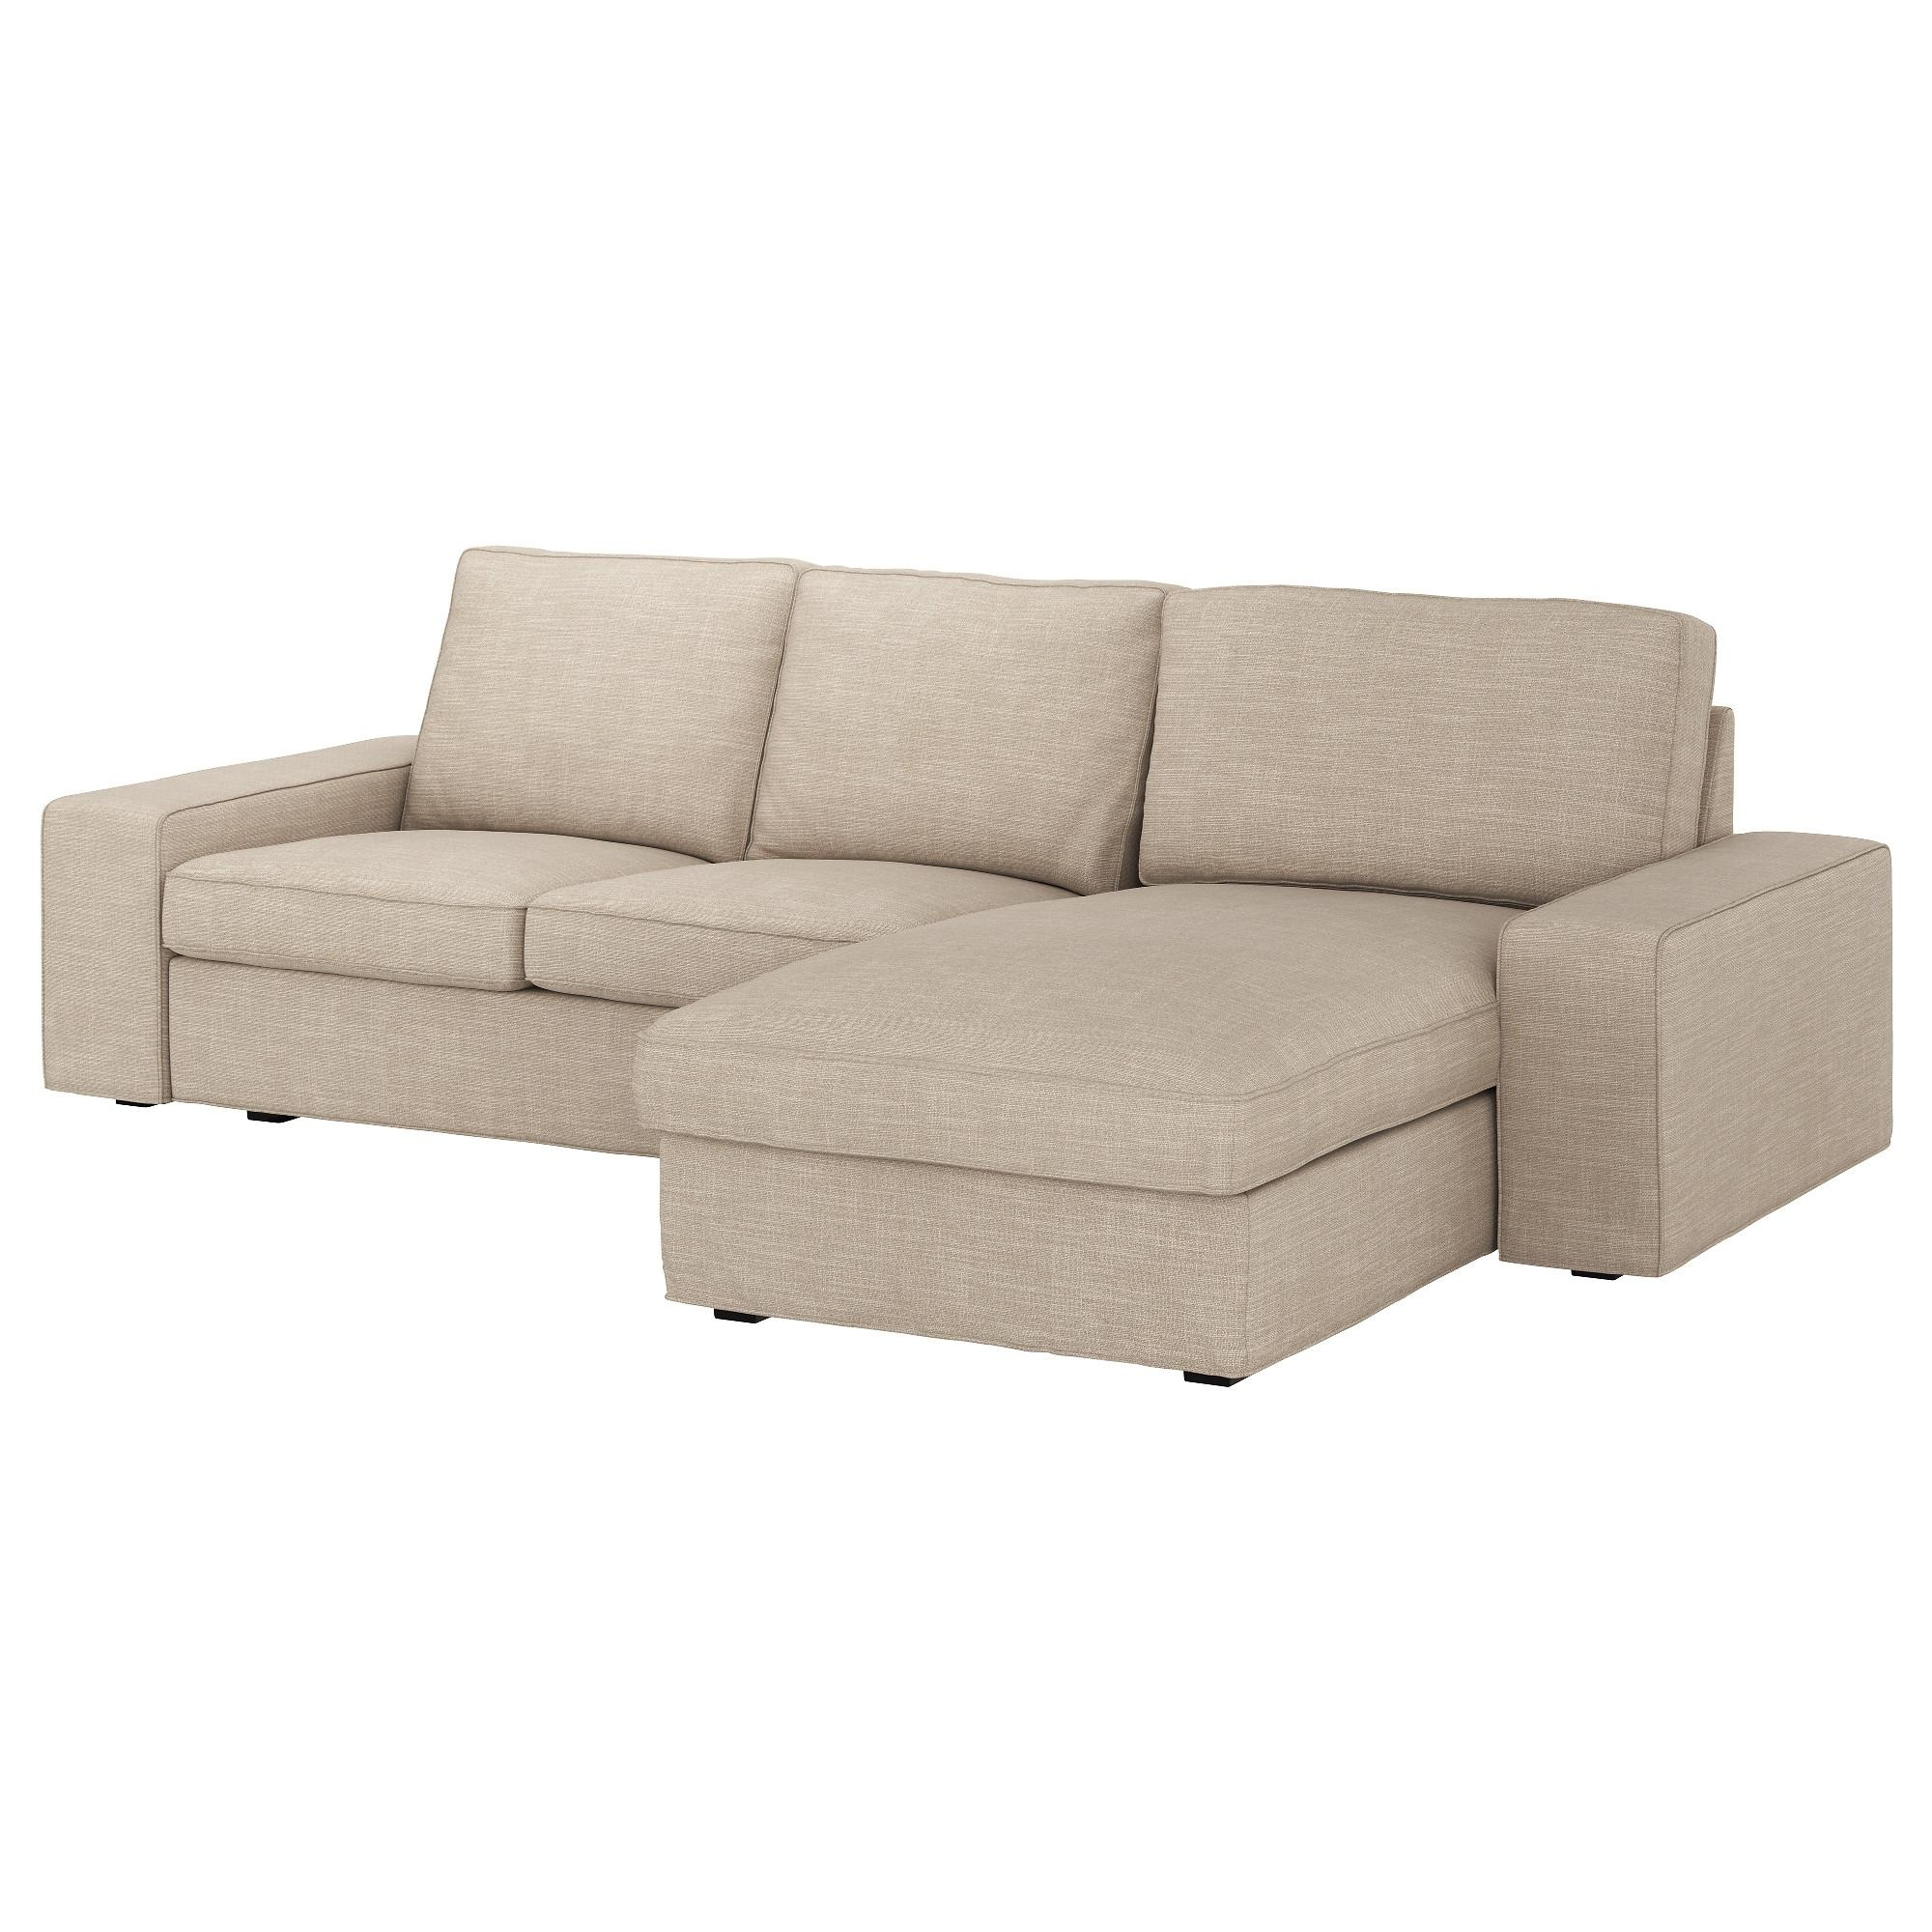 Kivik 3 Seat Sofa With Chaise Longue/hillared Beige – Ikea In Ikea Chaise Lounge Sofa (Image 11 of 20)